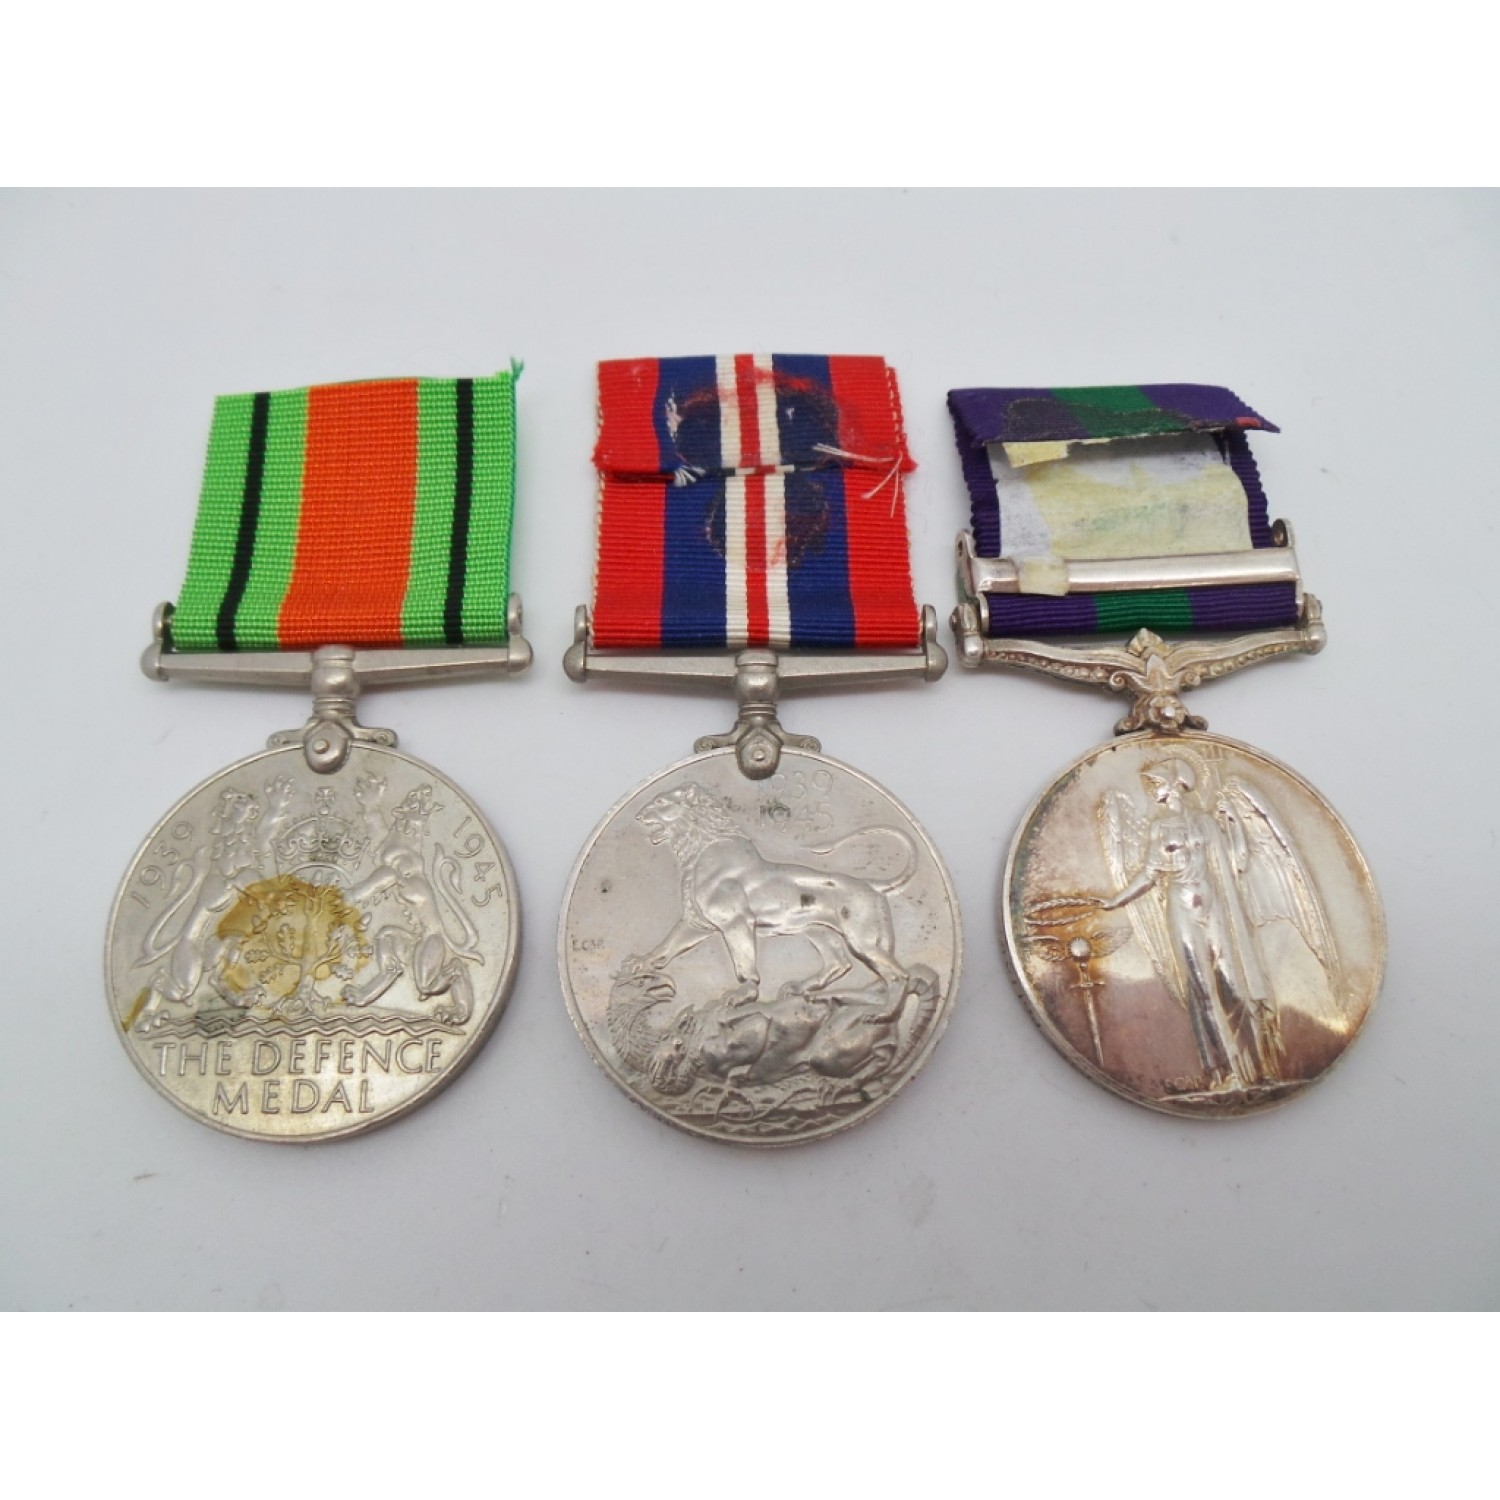 WW2 Defence Medal, 1939-45 War Medal and General Service